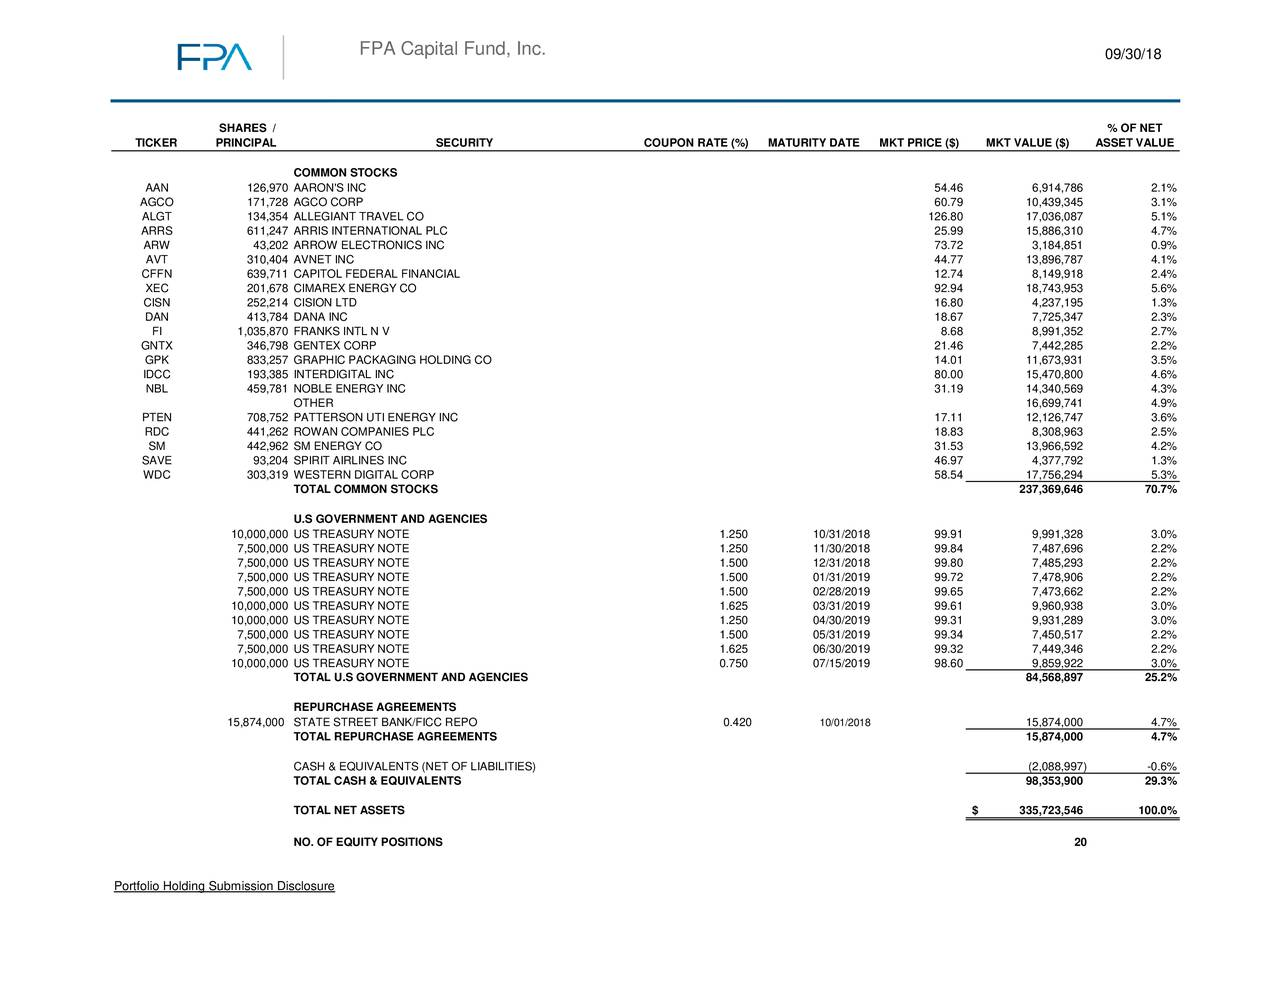 fpa capital fund  inc  q3 2018 commentary